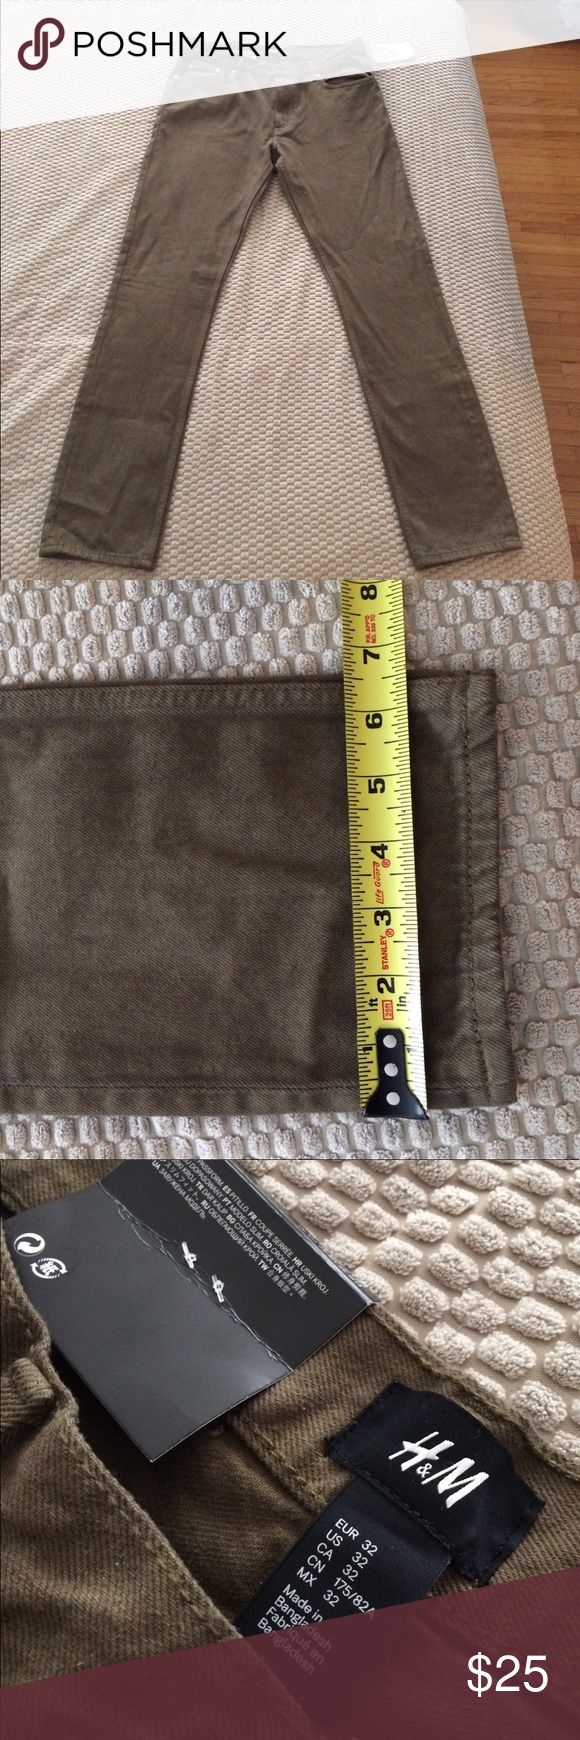 H&M Men's slim fit casual pants H&M men's Slim-fit brown pants Brand-new with tags Slim fit. Very cool style!  100% cotton  32 waist  30 inseam H&M Jeans Slim